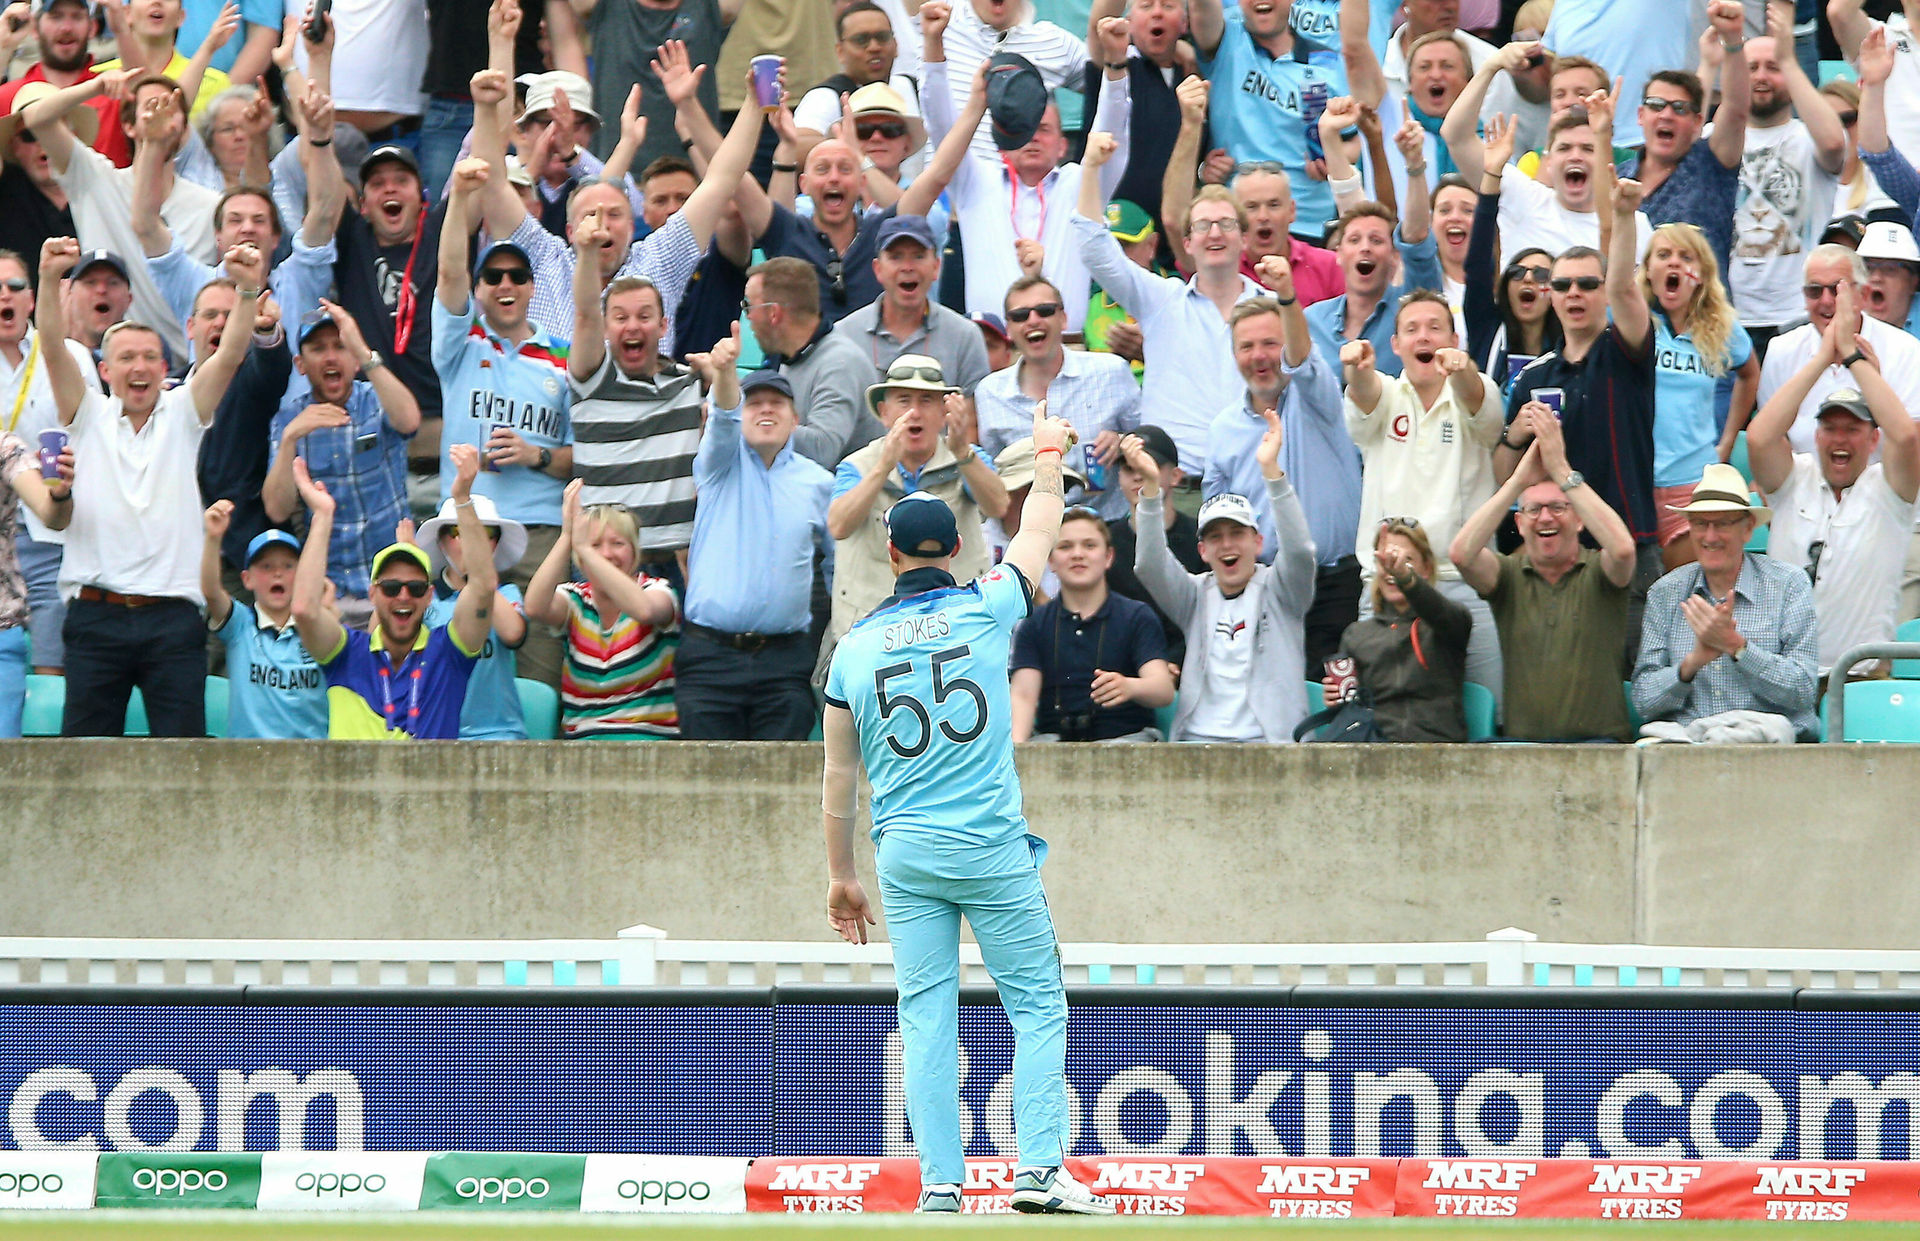 Andrew Alderson: A day in London at the Cricket World Cup